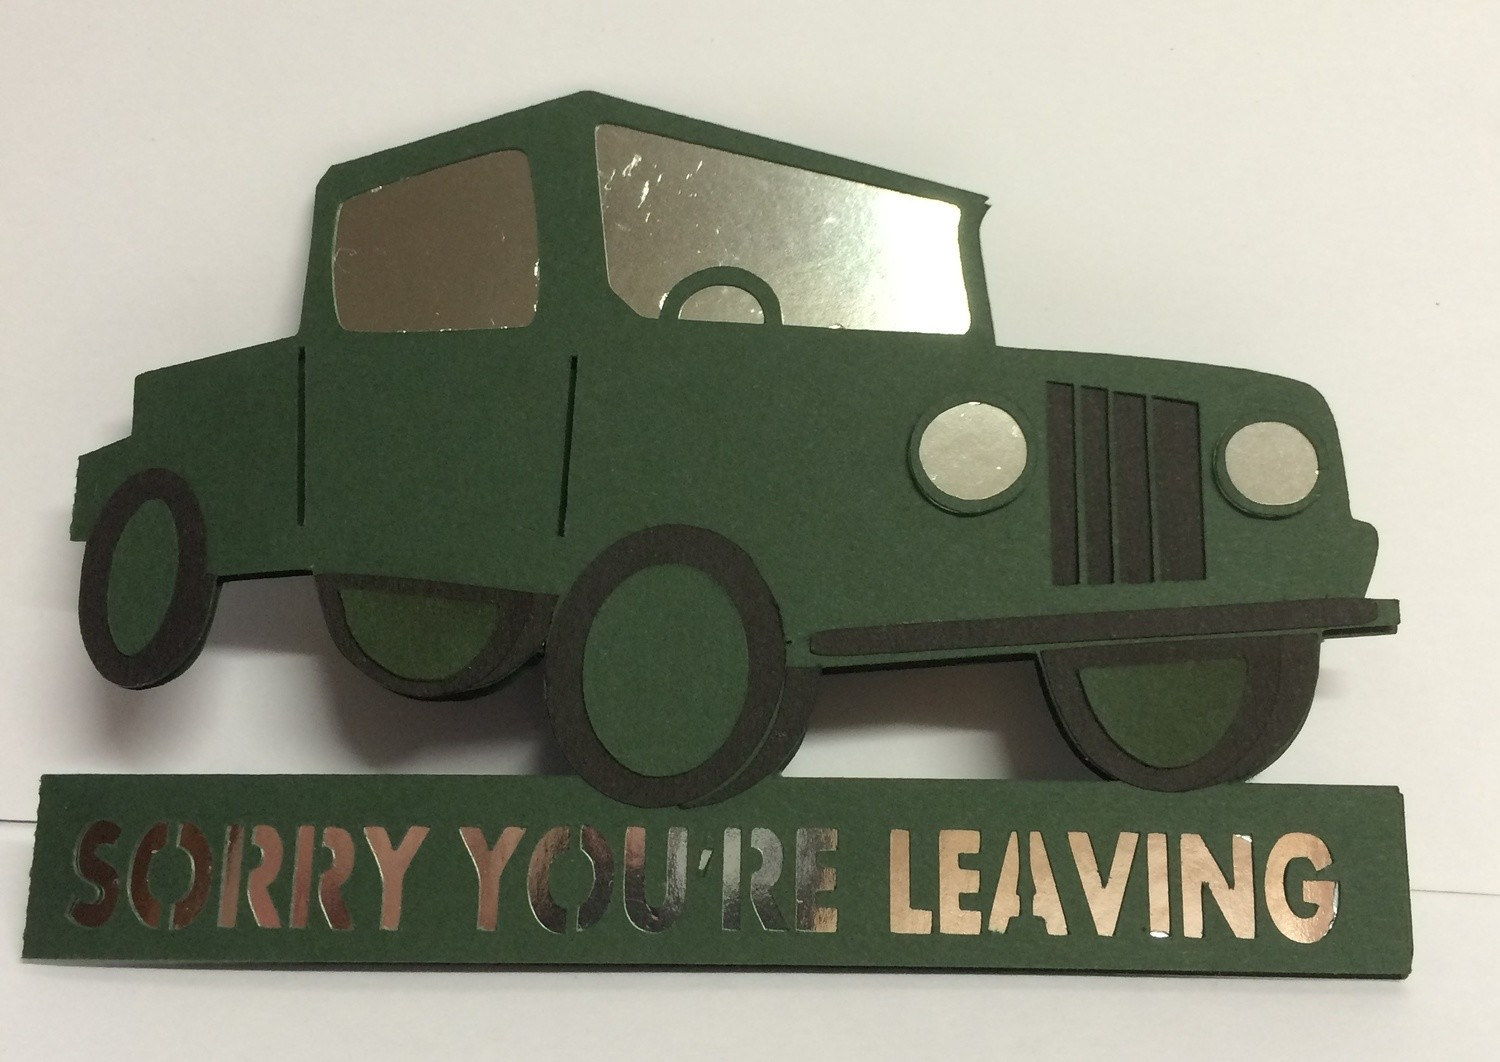 JEEP 4 x 4  vehicle SORRY YOU ARE LEAVING  -  layered card template